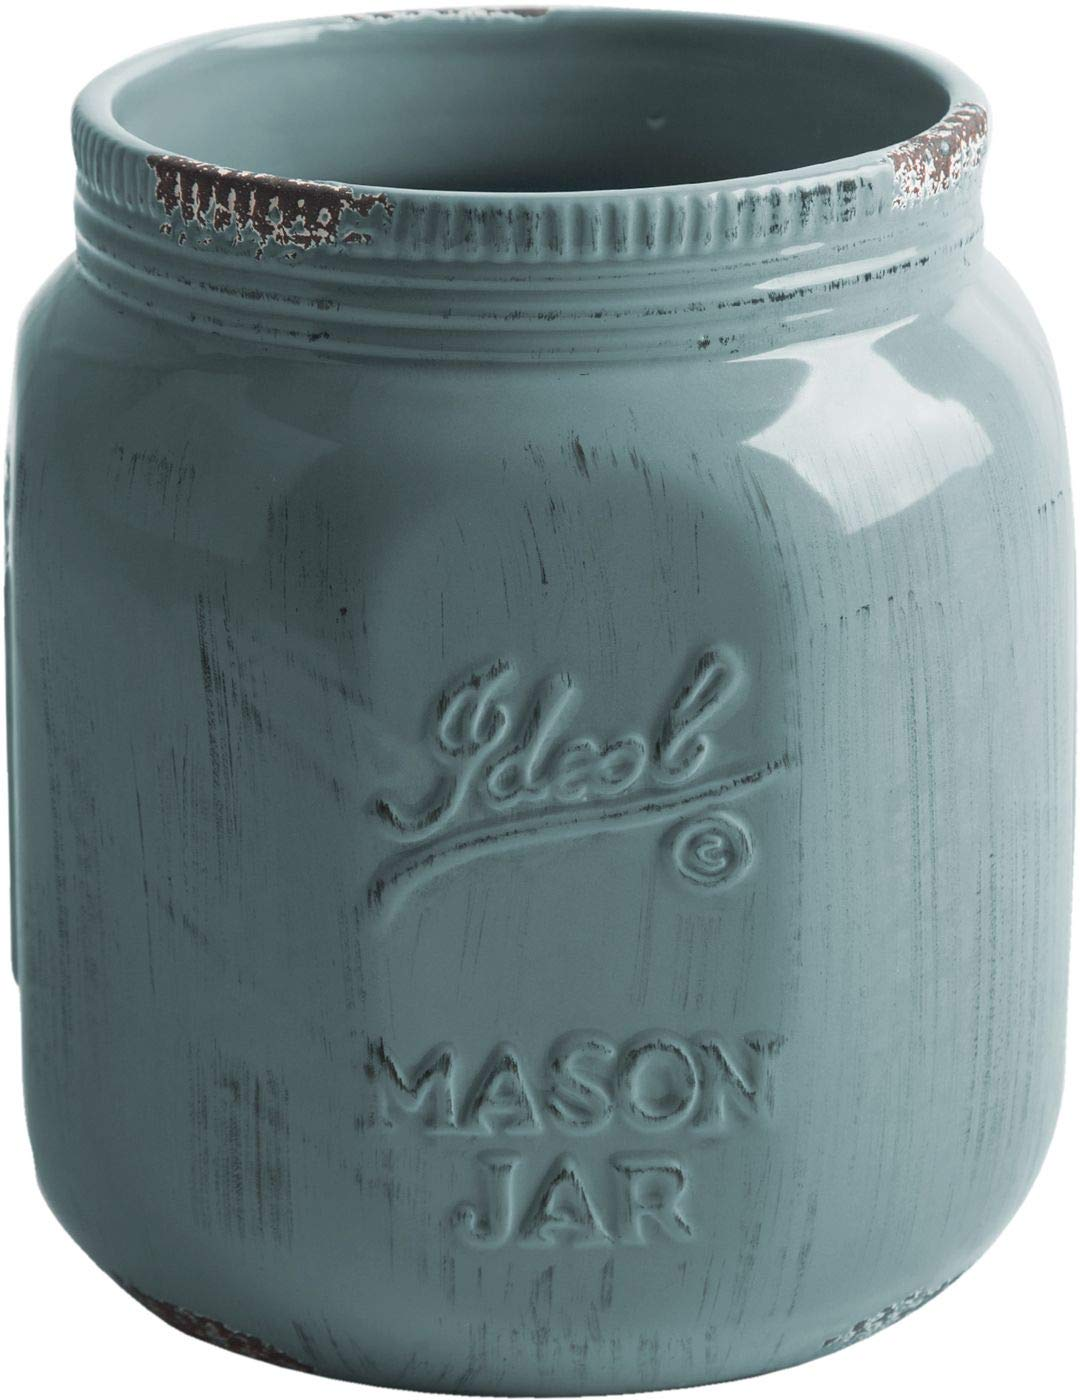 Home Essentials Vintage Mason Jar Collect Antique Utensil Crock Blue Grey 7 inches Height